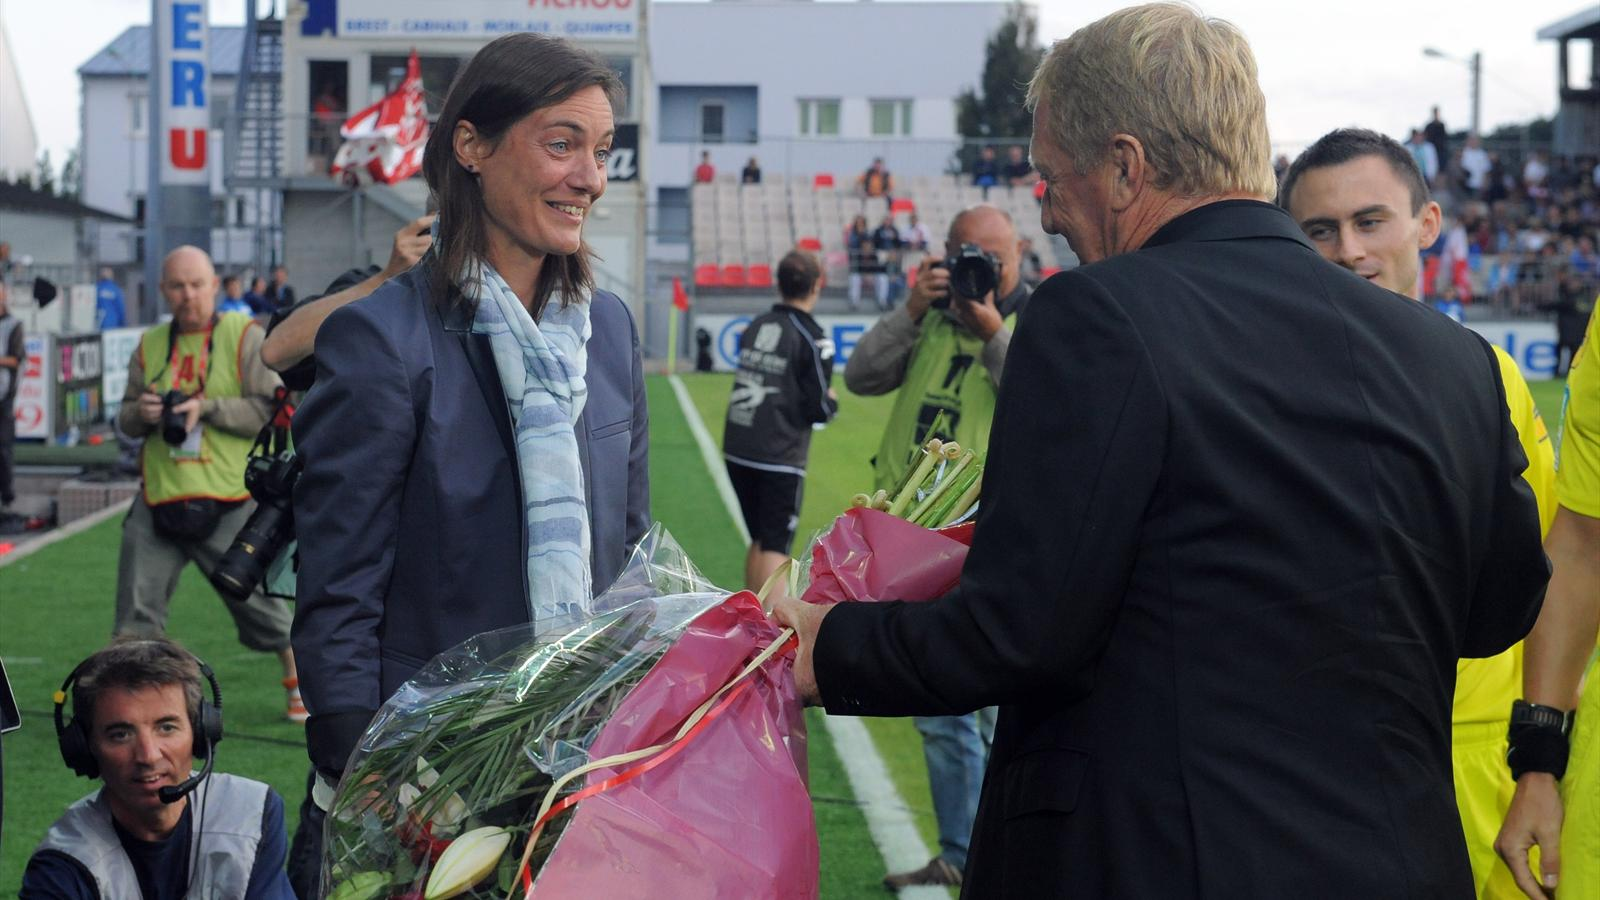 1289762 27788055 1600 900 Patronising? Clement Foots manageress given flowers by Brests coach in her 1st match